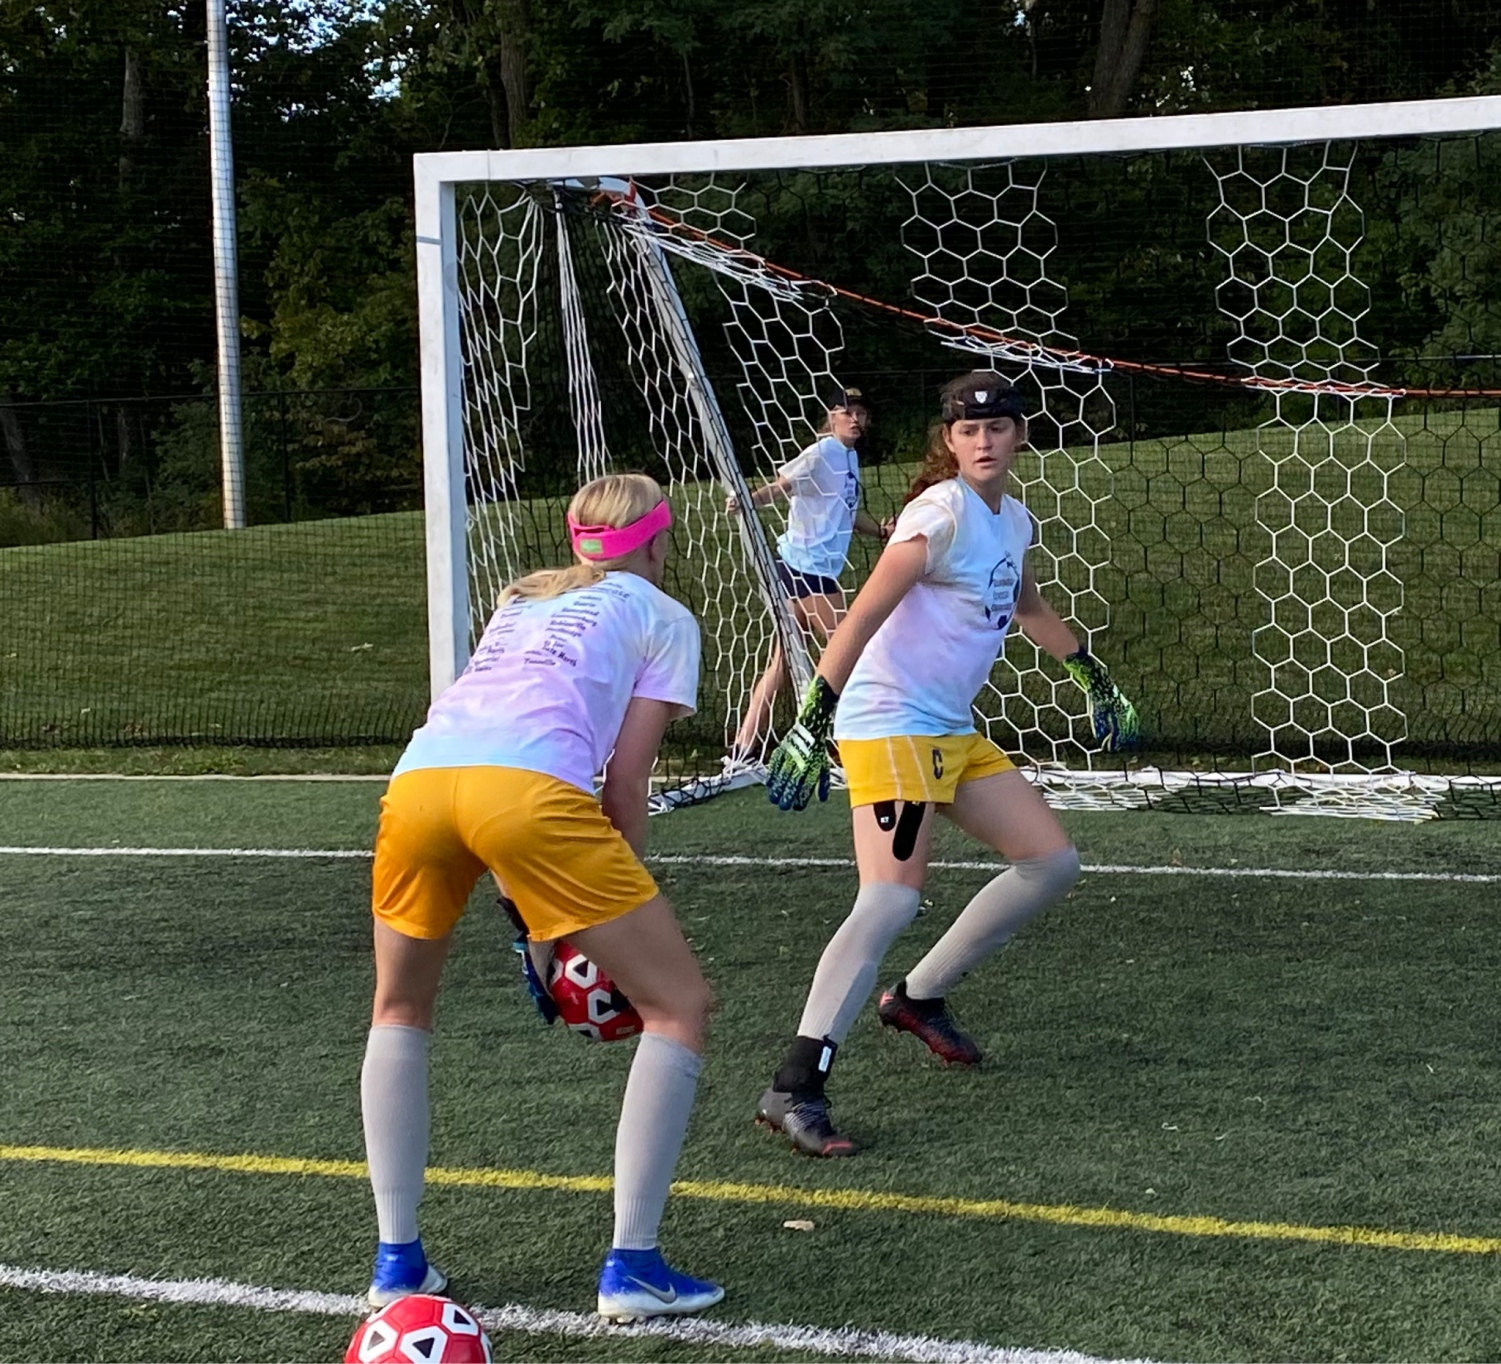 Goalkeeper and junior Bethany Ducat (right) prepares to save a ball about to be thrown by goalkeeper and junior Aubree Empie while warming up for a game against Warren Central on Sept. 15